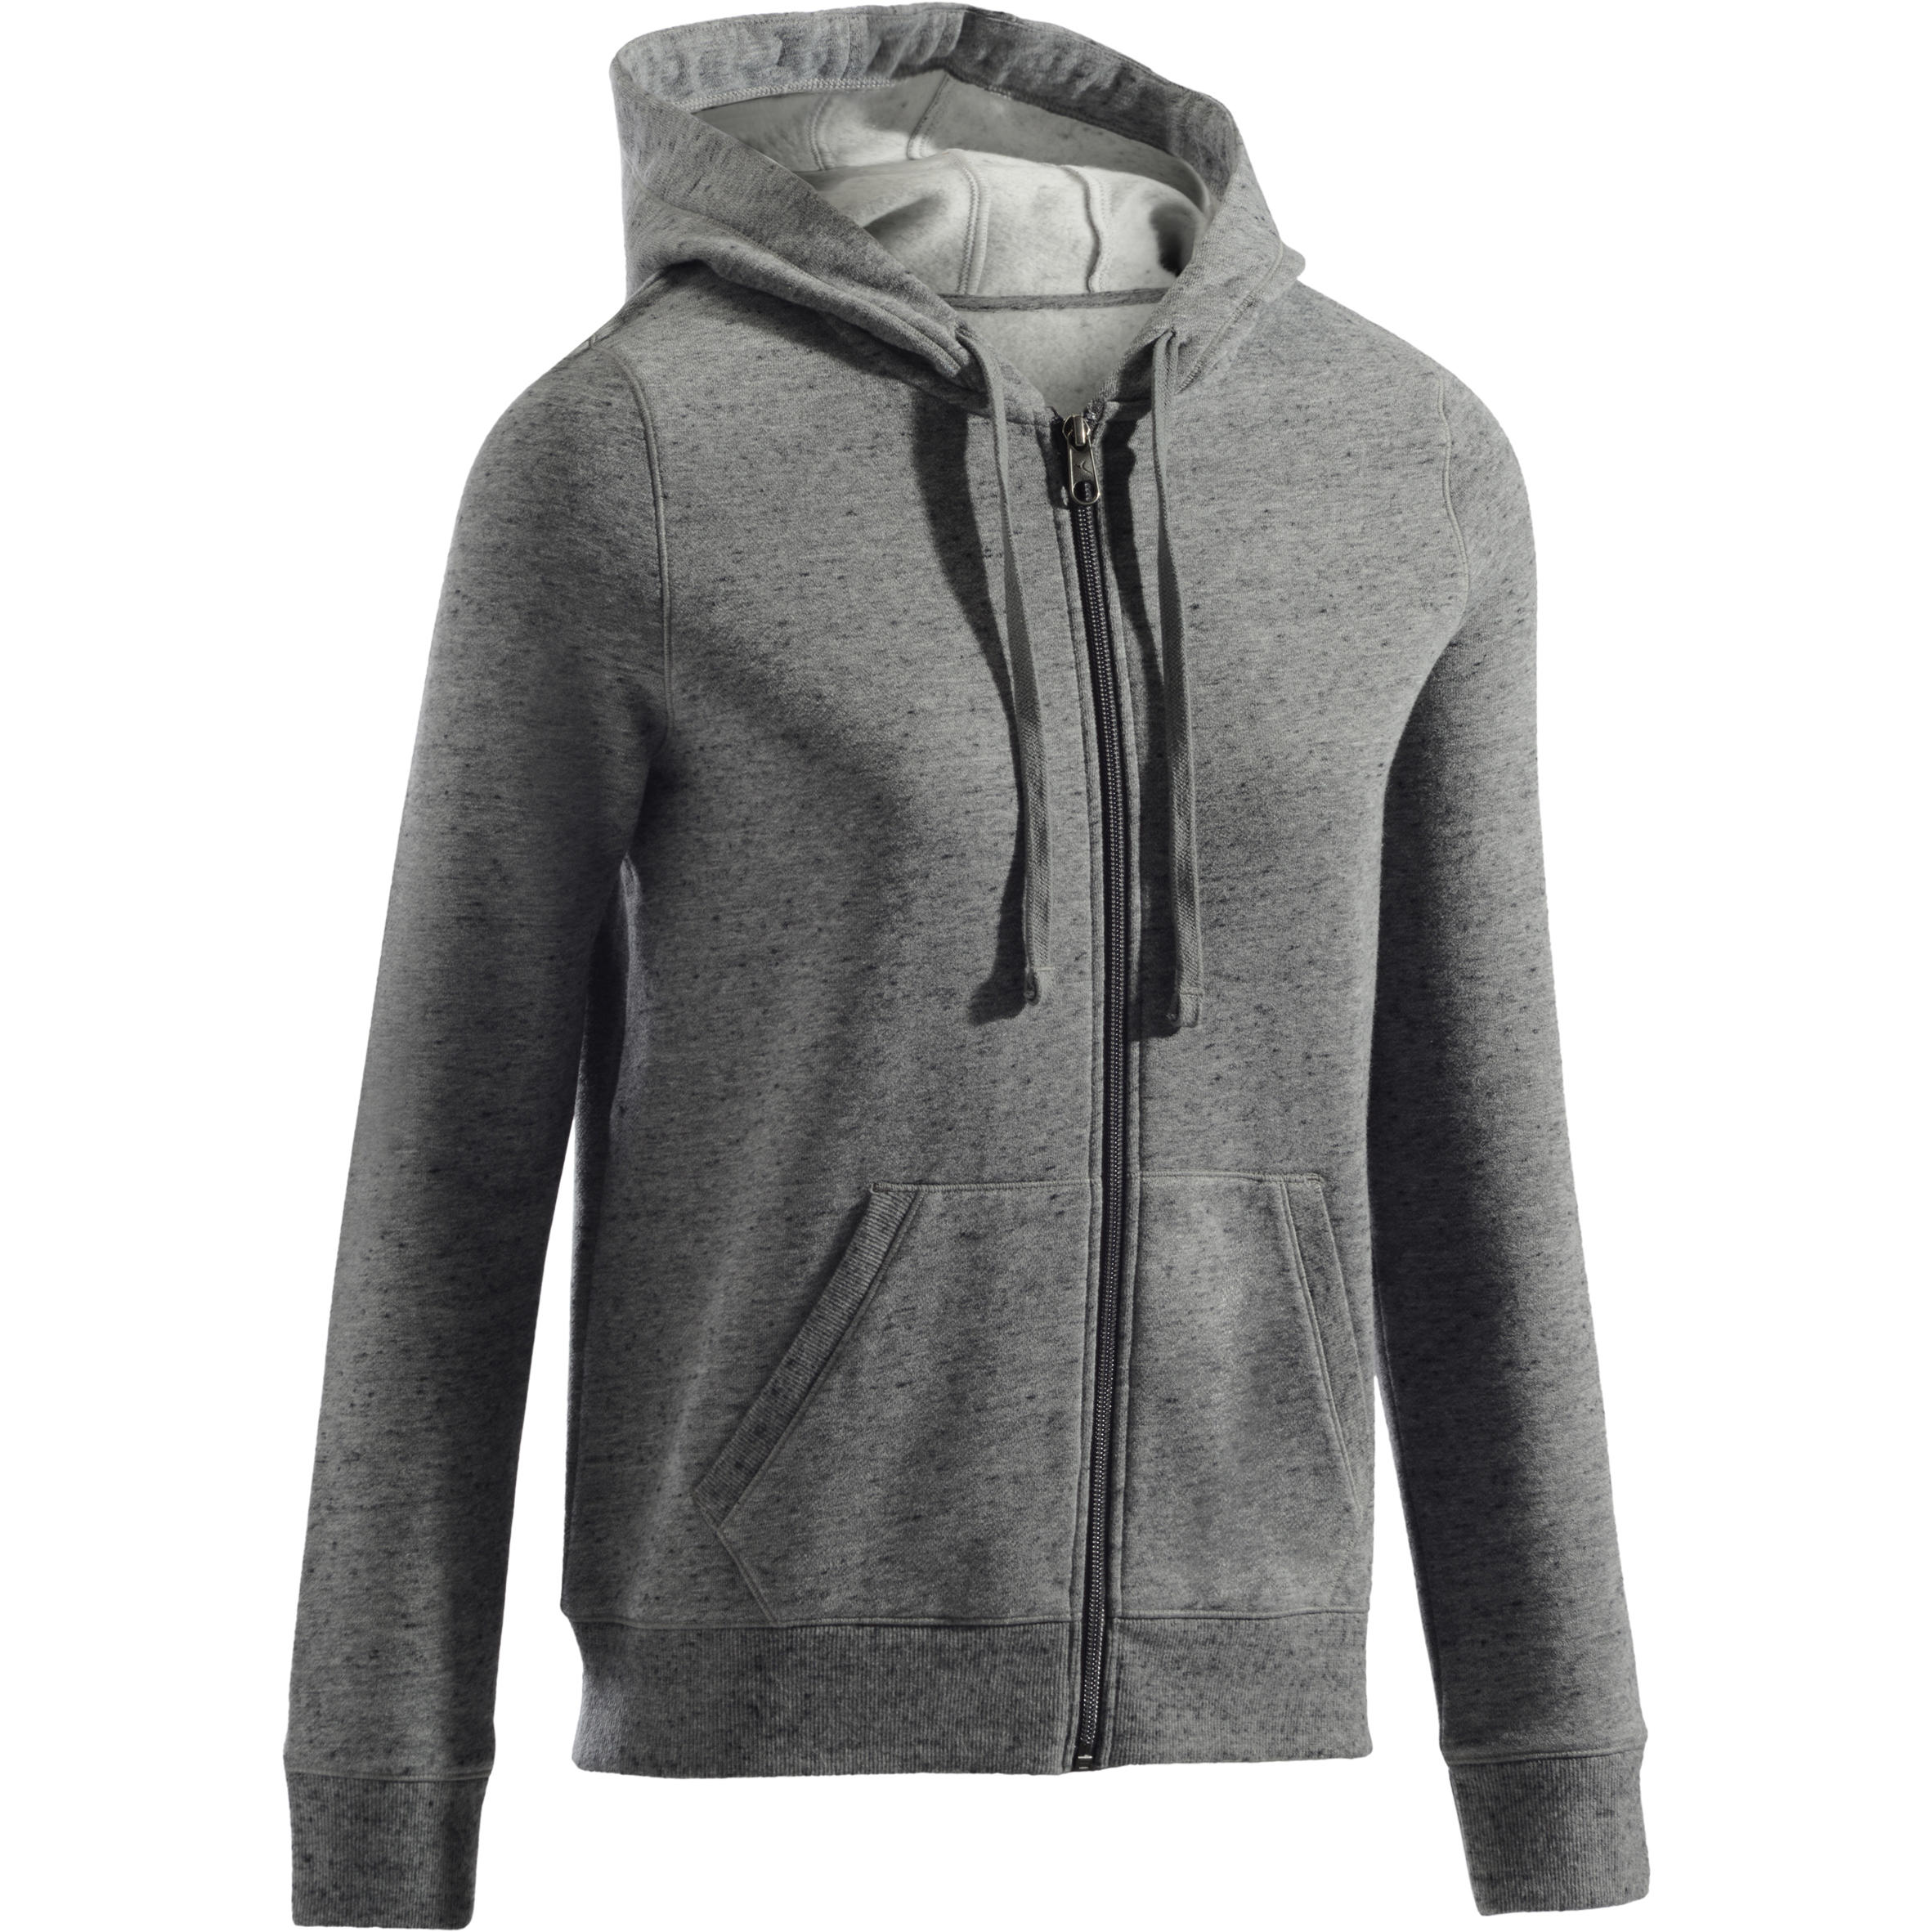 520 Women's Hooded...